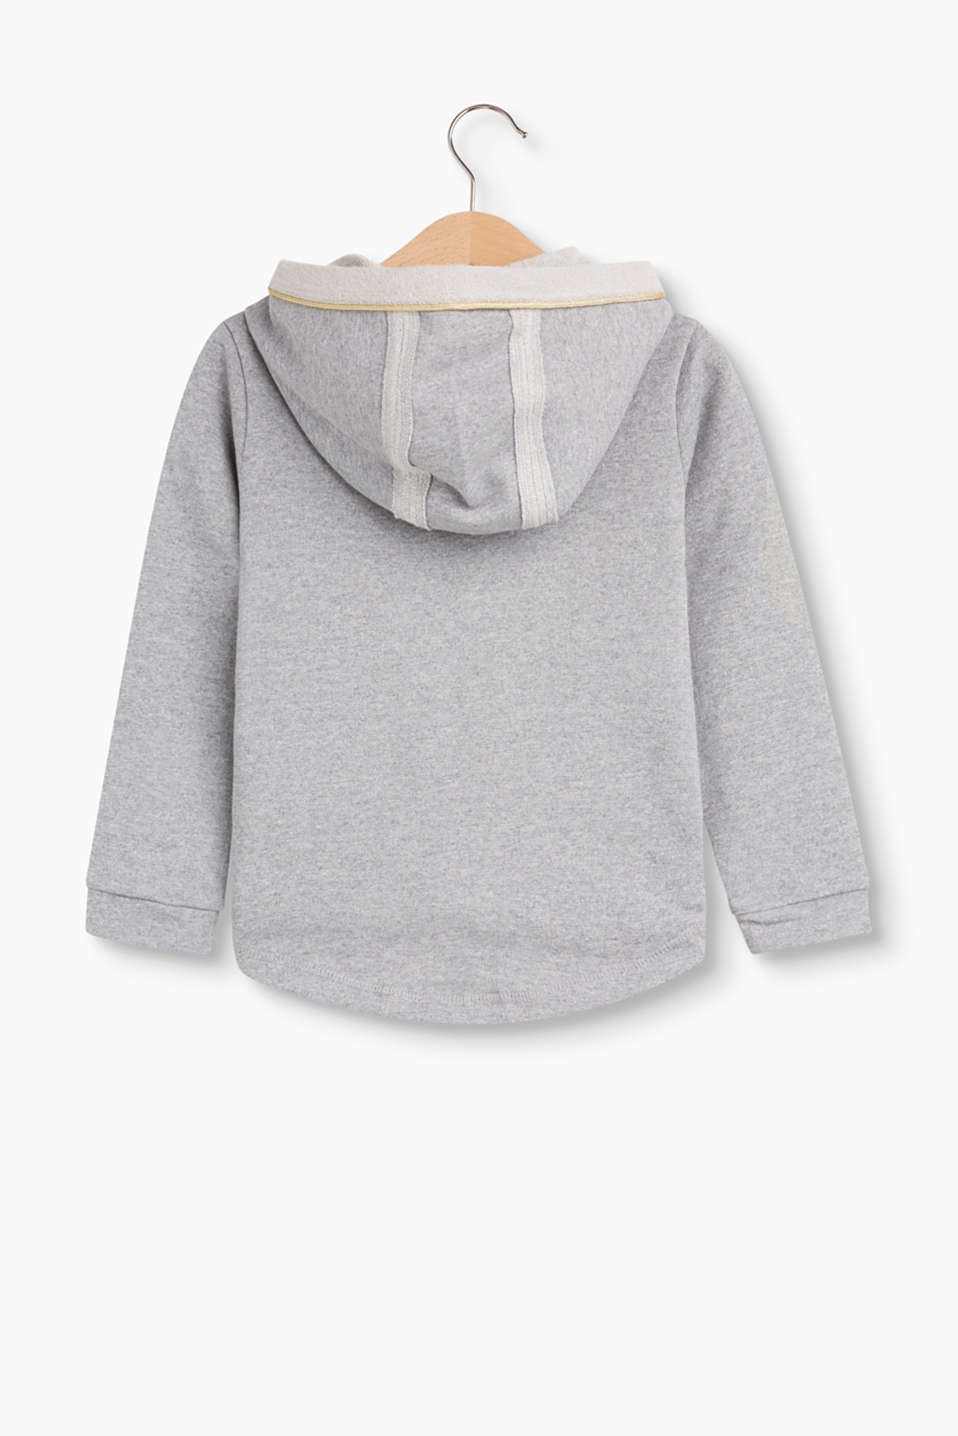 Hoodie with a shimmering glitter finish